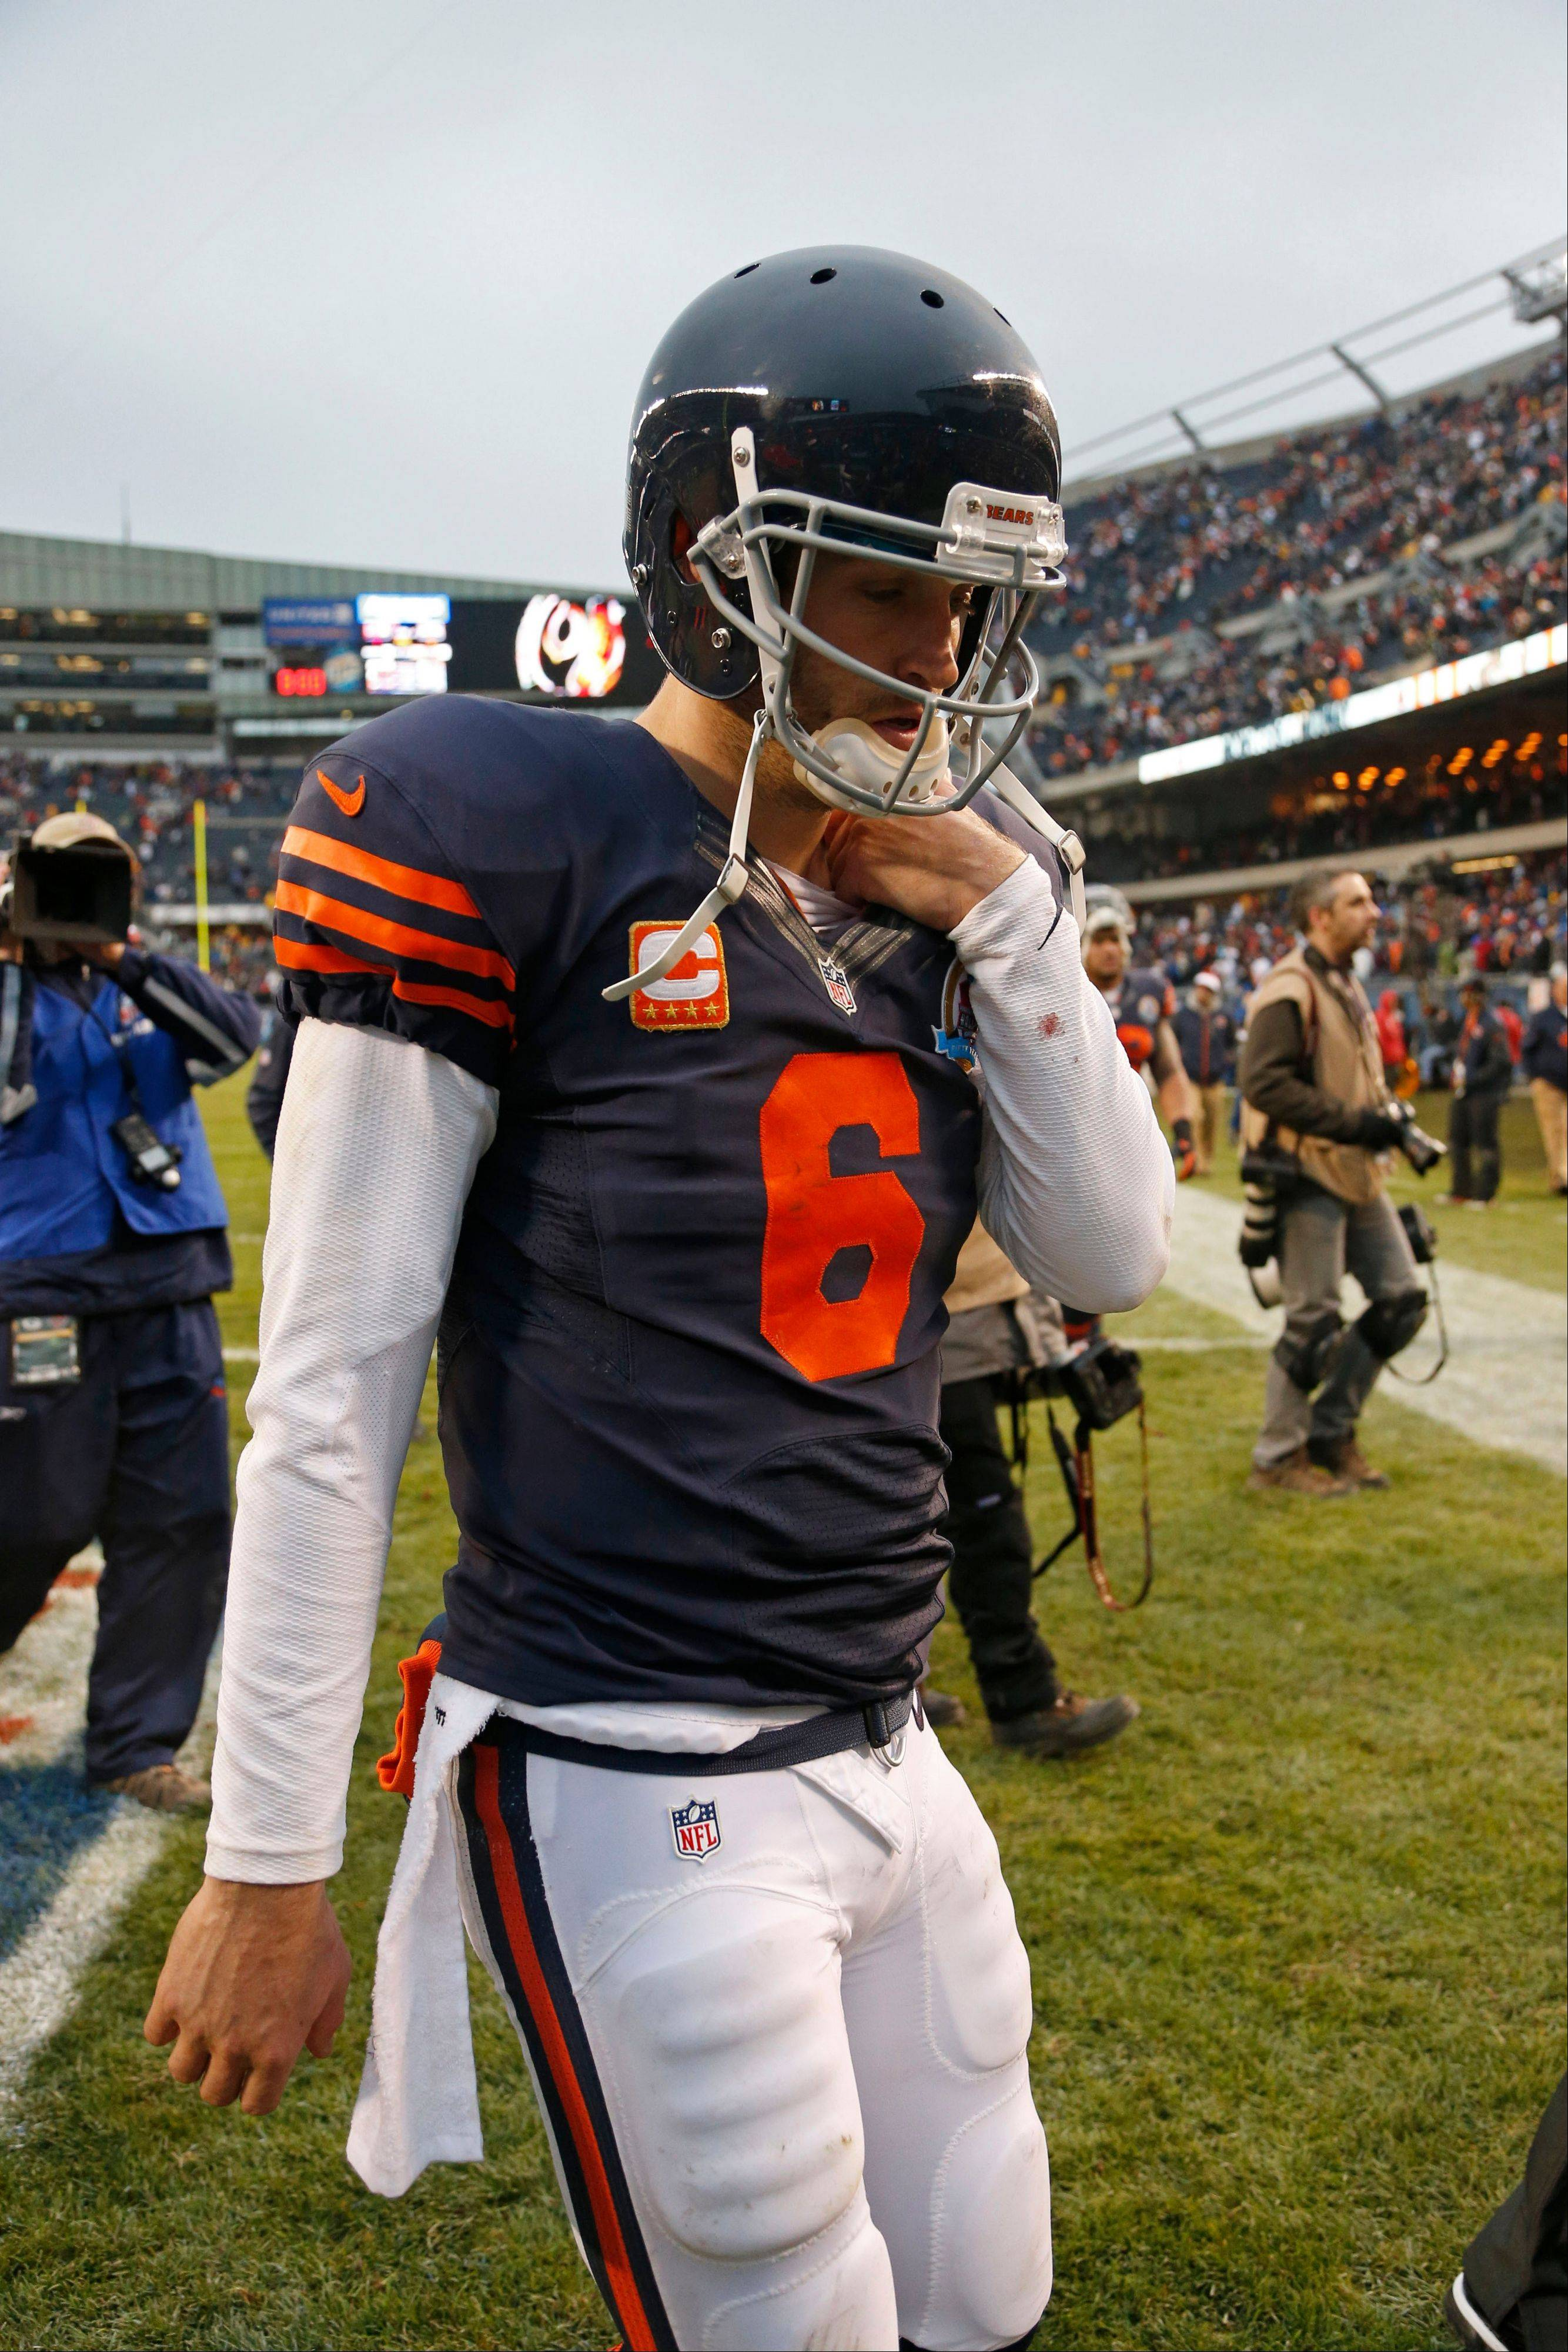 Quarterback Jay Cutler and the Bears are just concentrating on one thing this week: getting their record to 9-6 with a victory Sunday at Arizona.